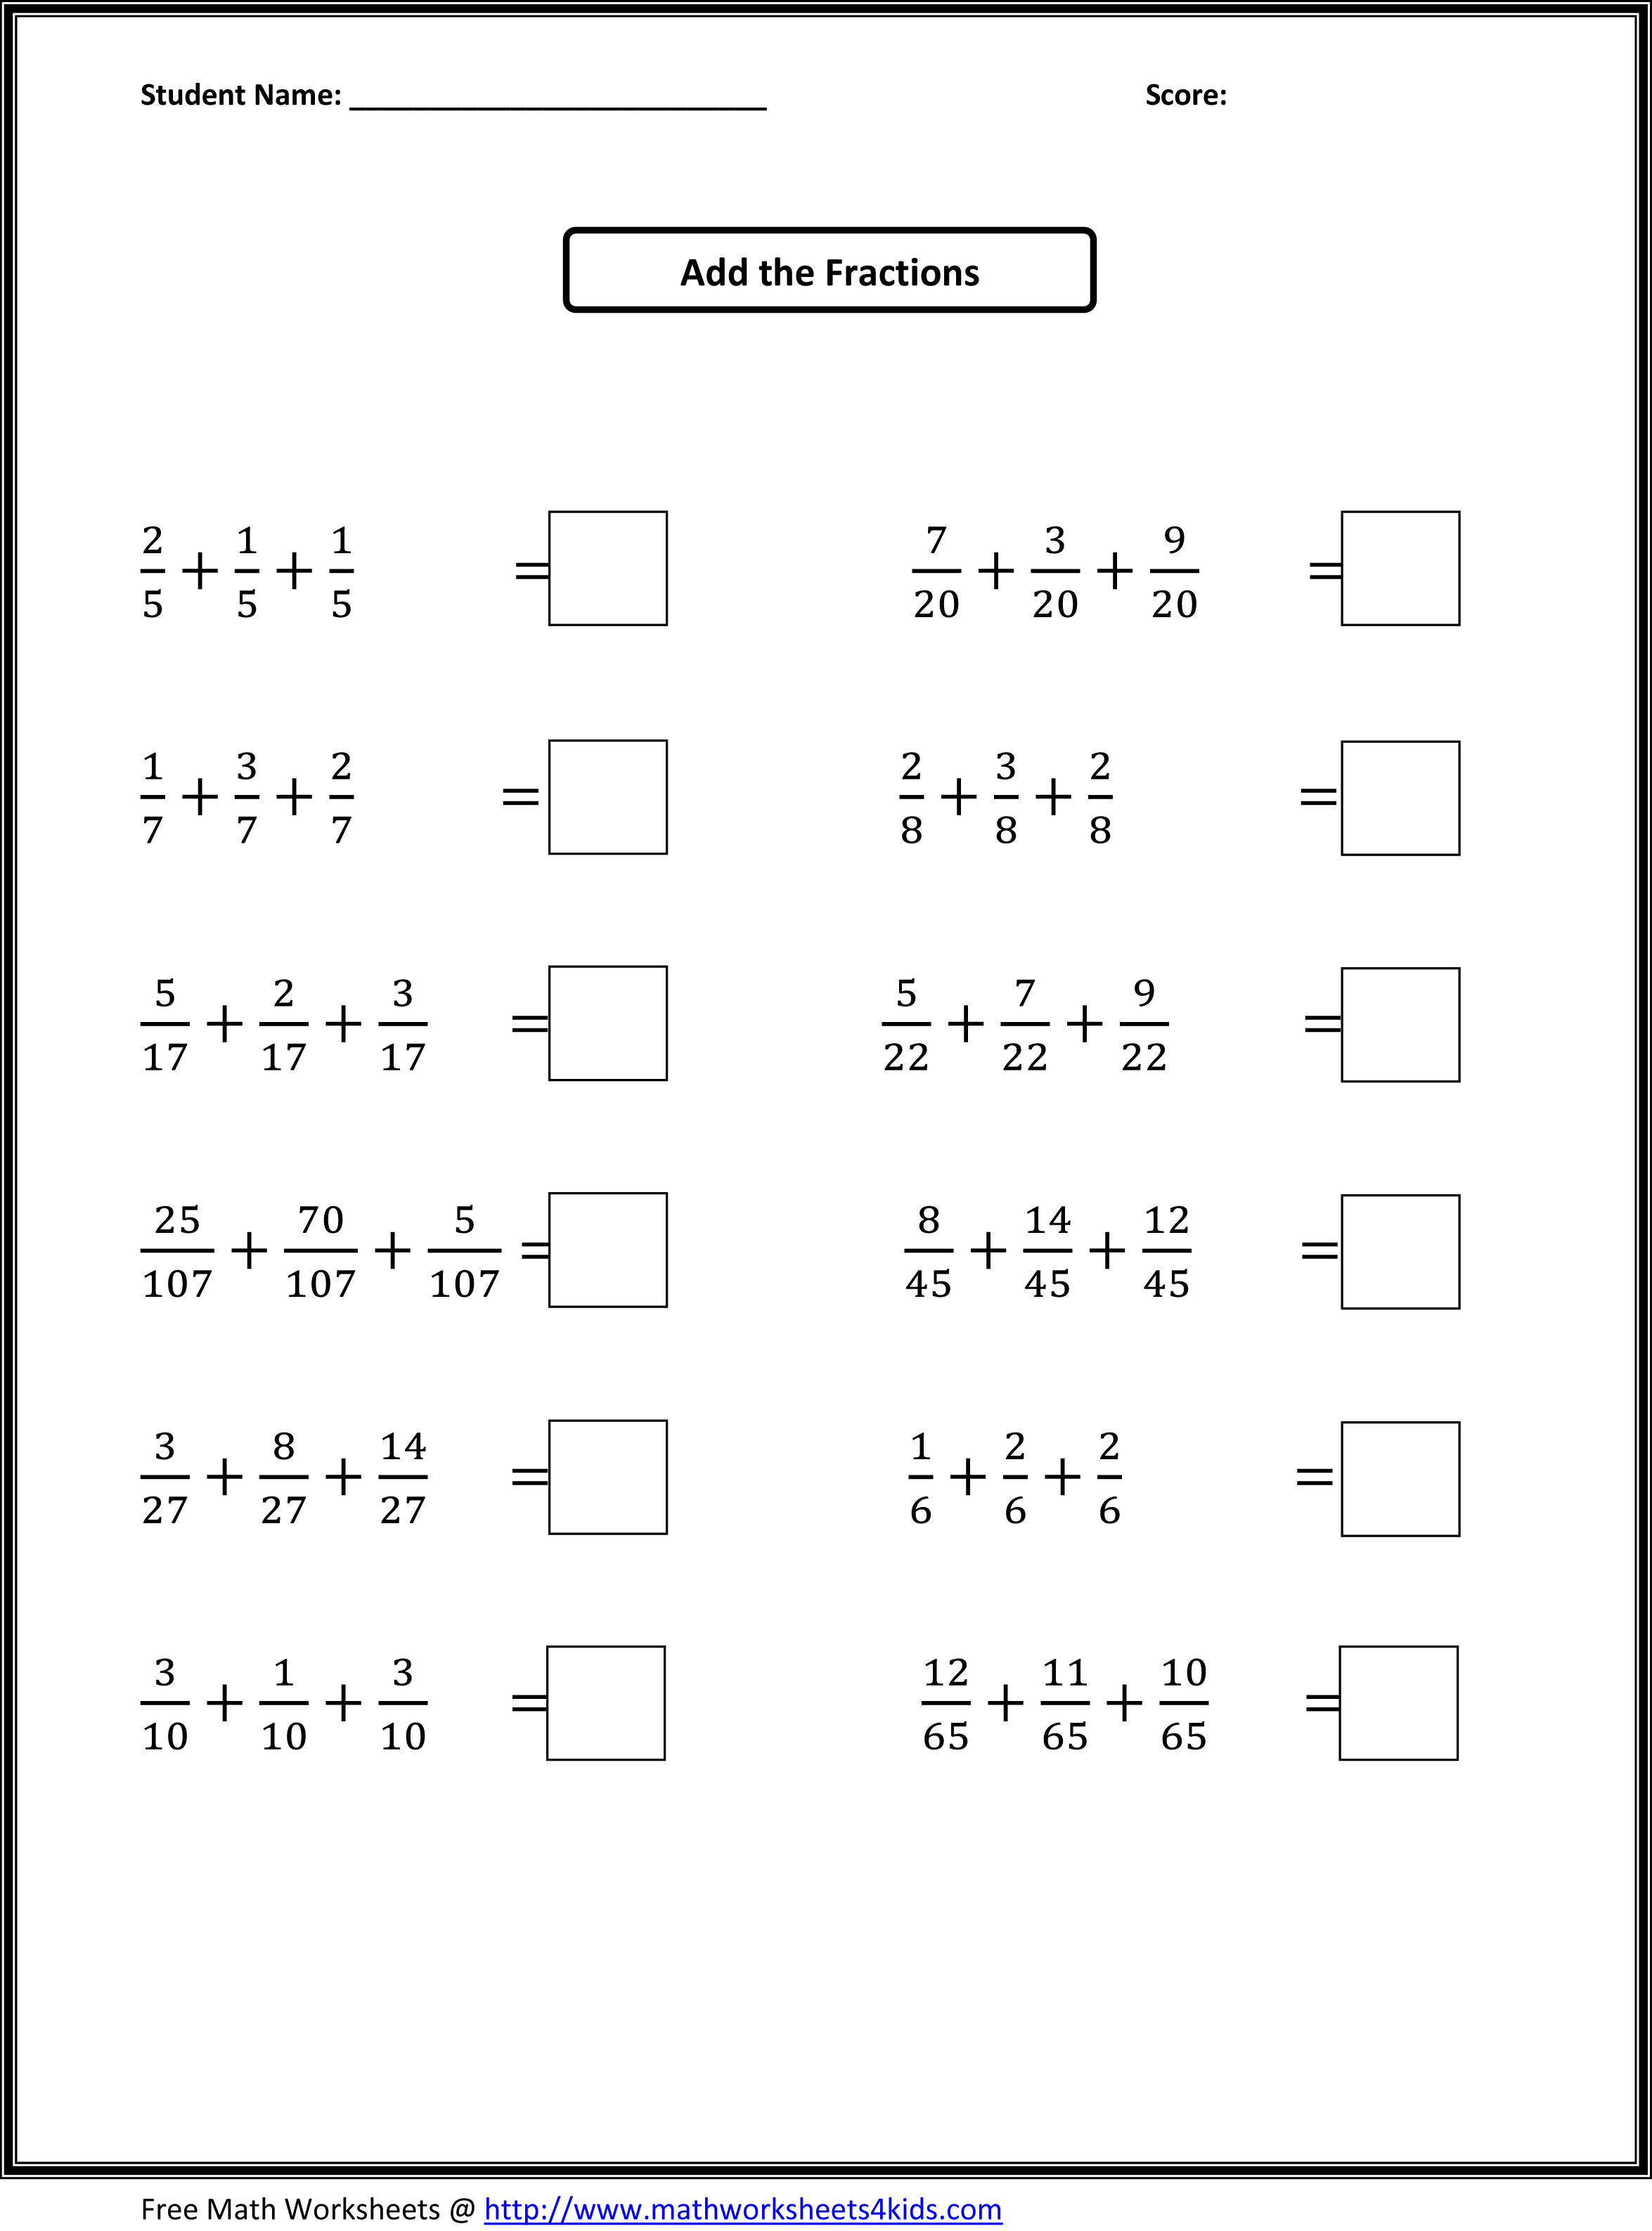 4th Grade Printable Math Worksheets Davezan – Math Worksheets for 4th Grade Multiplication